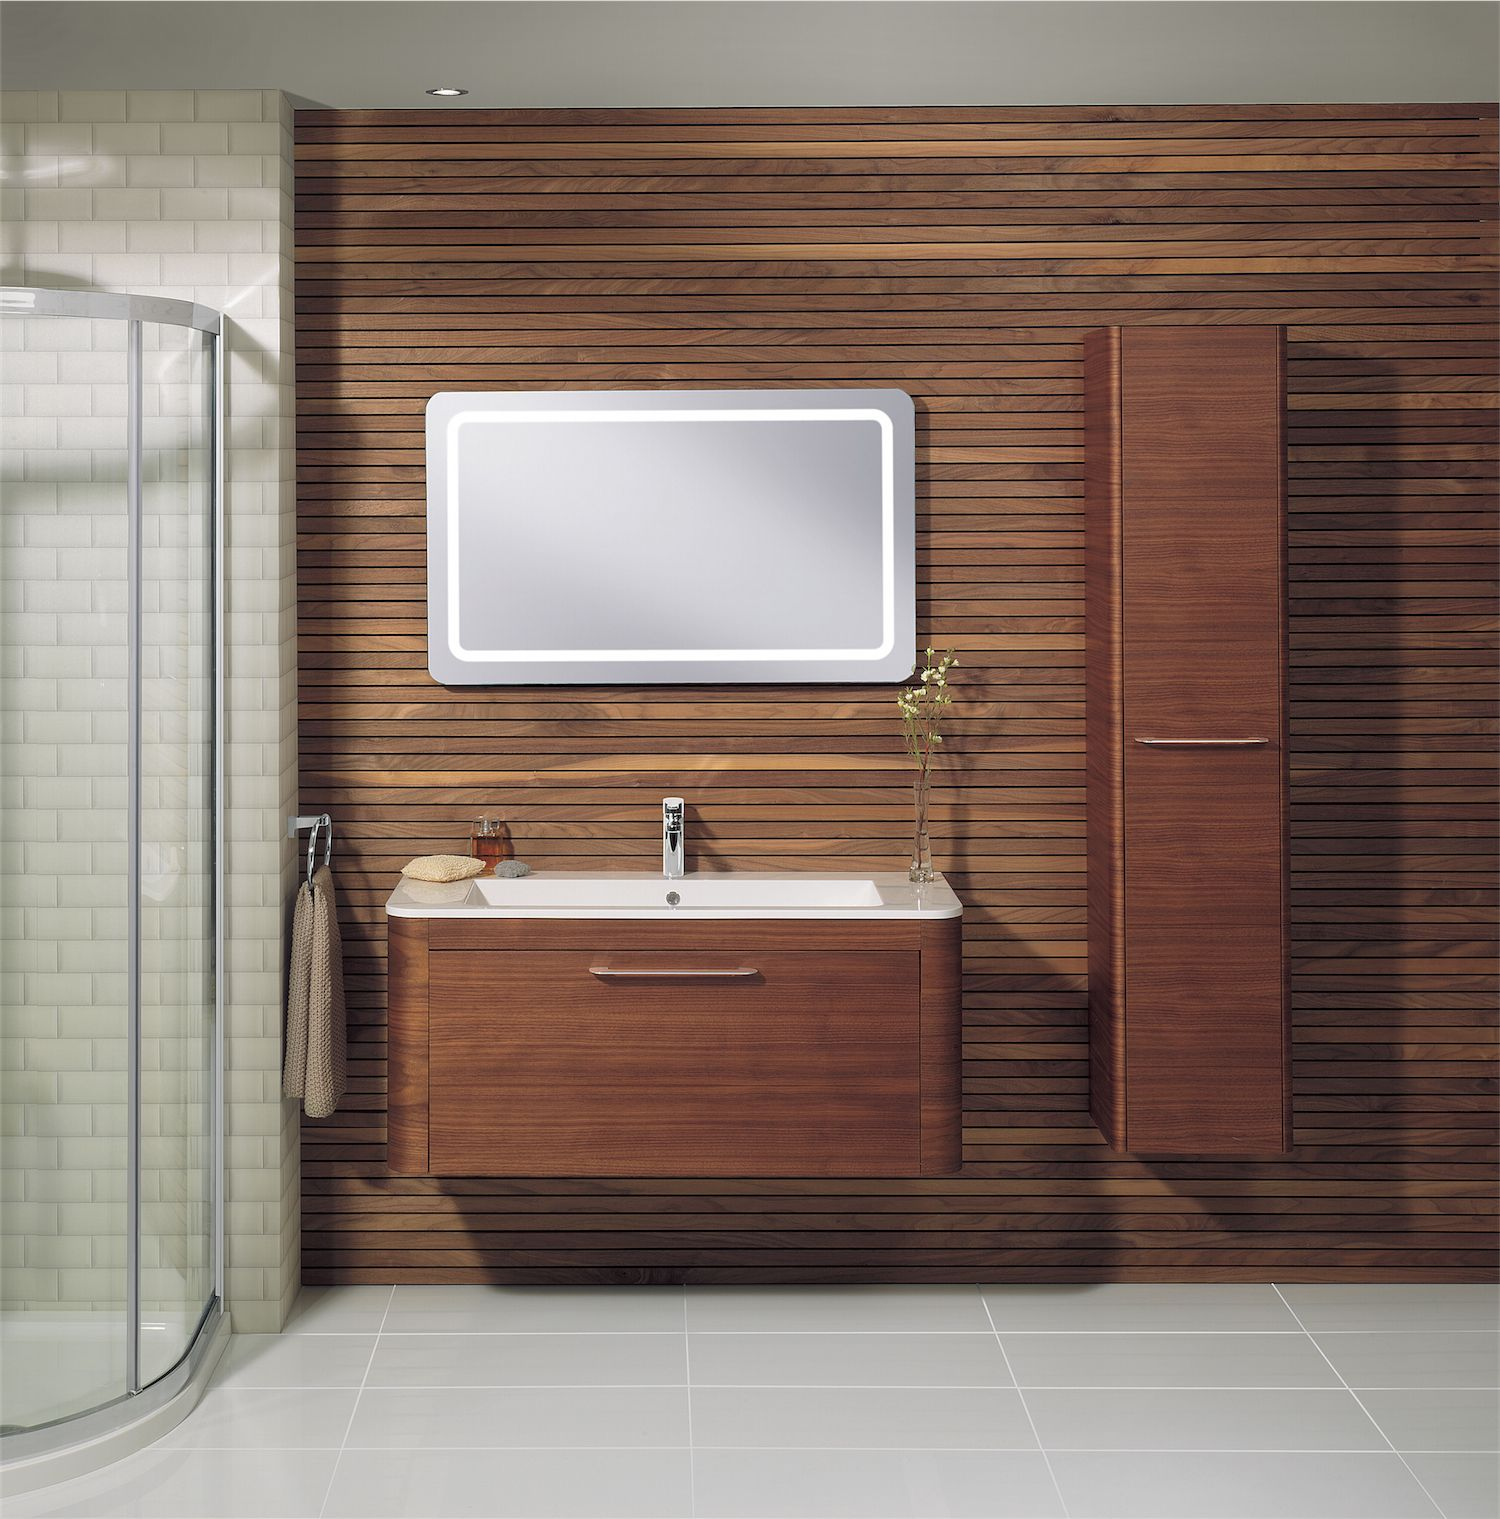 Bathroom Designs York celeste bathroom furniture range from crosswater http://www